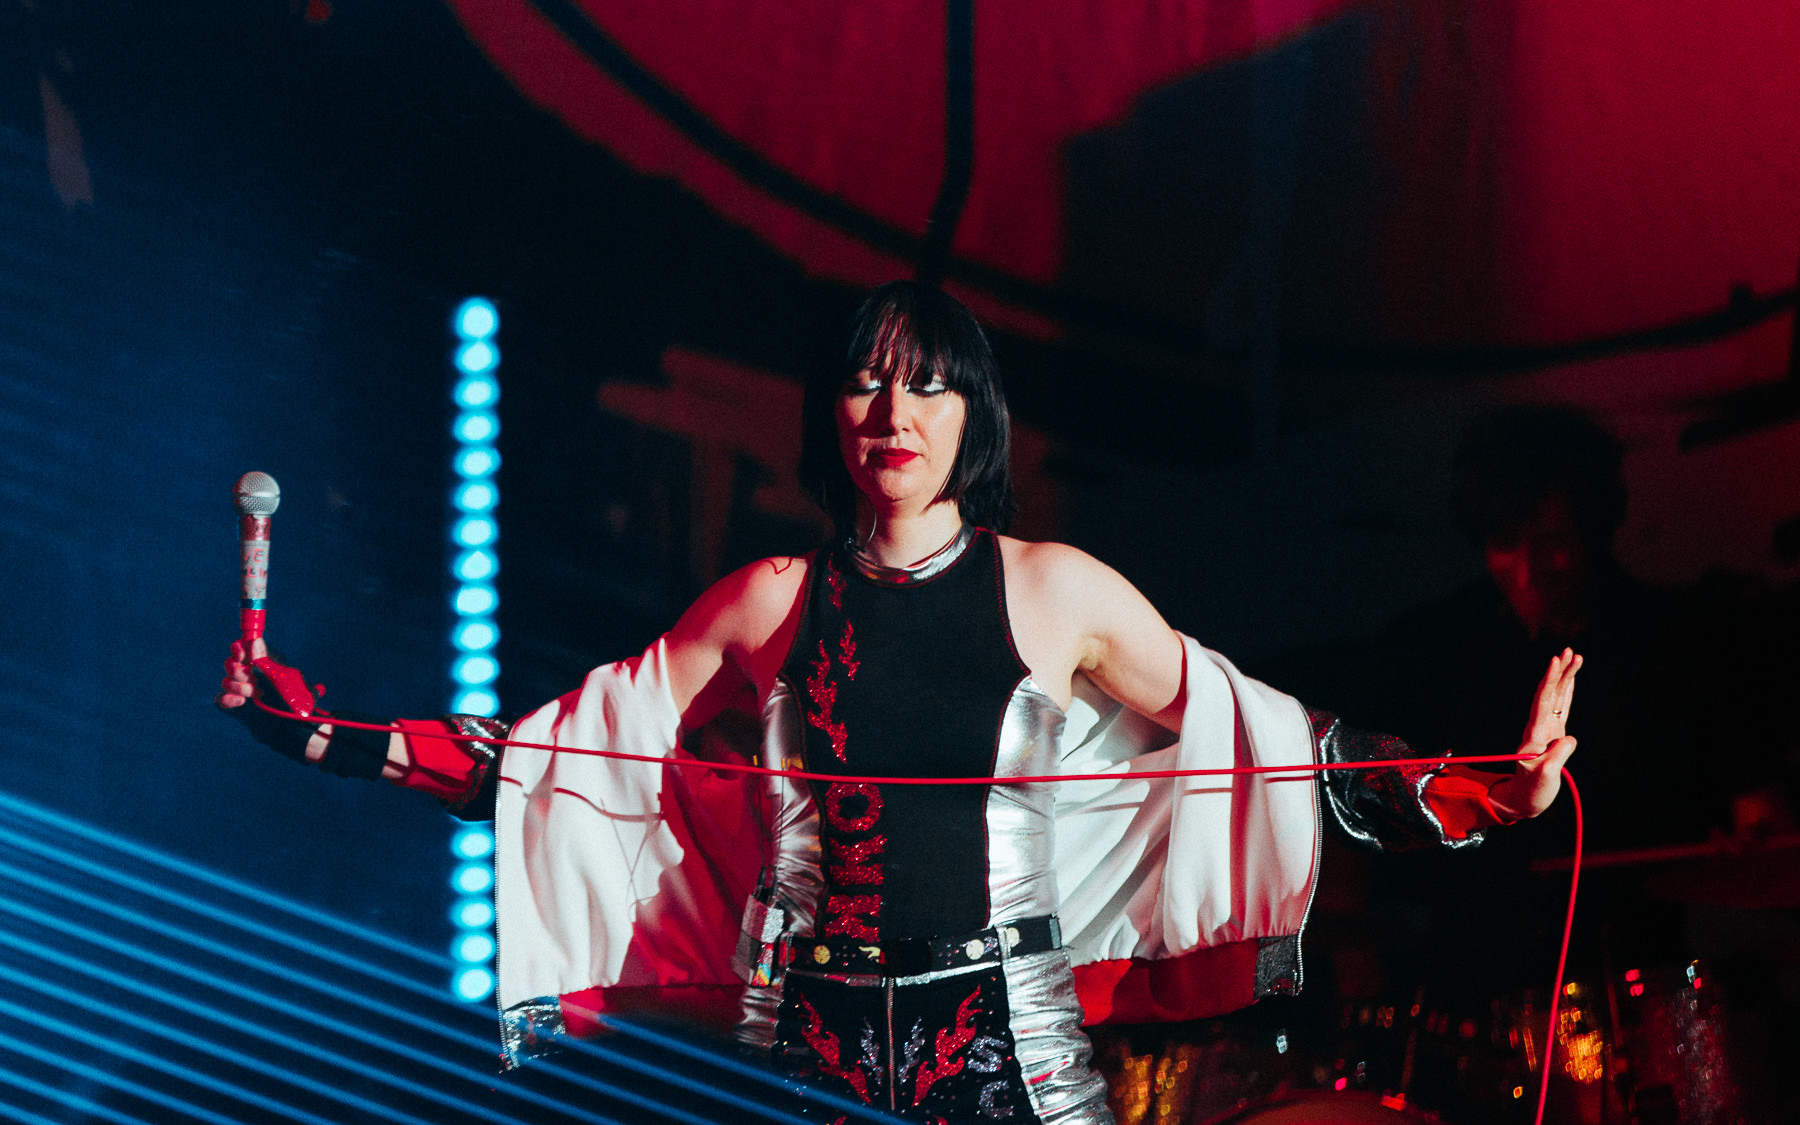 180506-kirby-gladstein-photograpy-Yeah-Yeah-Yeahs-Hollywood-Bowl-LA-7179.jpg